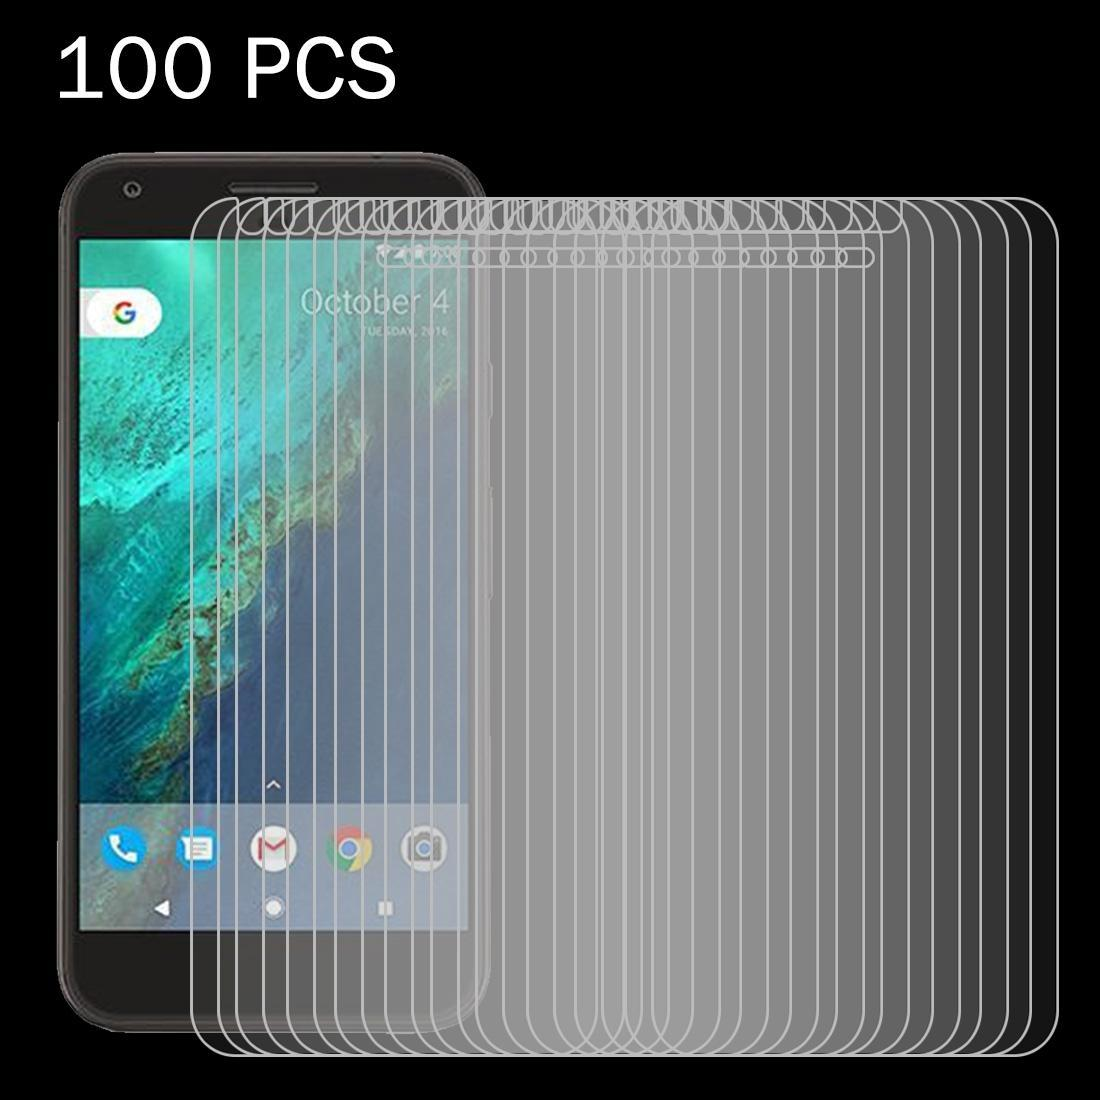 100 PCS for Google Pixel 0.26mm 9H Surface Hardness 2.5D Explosion-proof Tempered Glass Screen Film